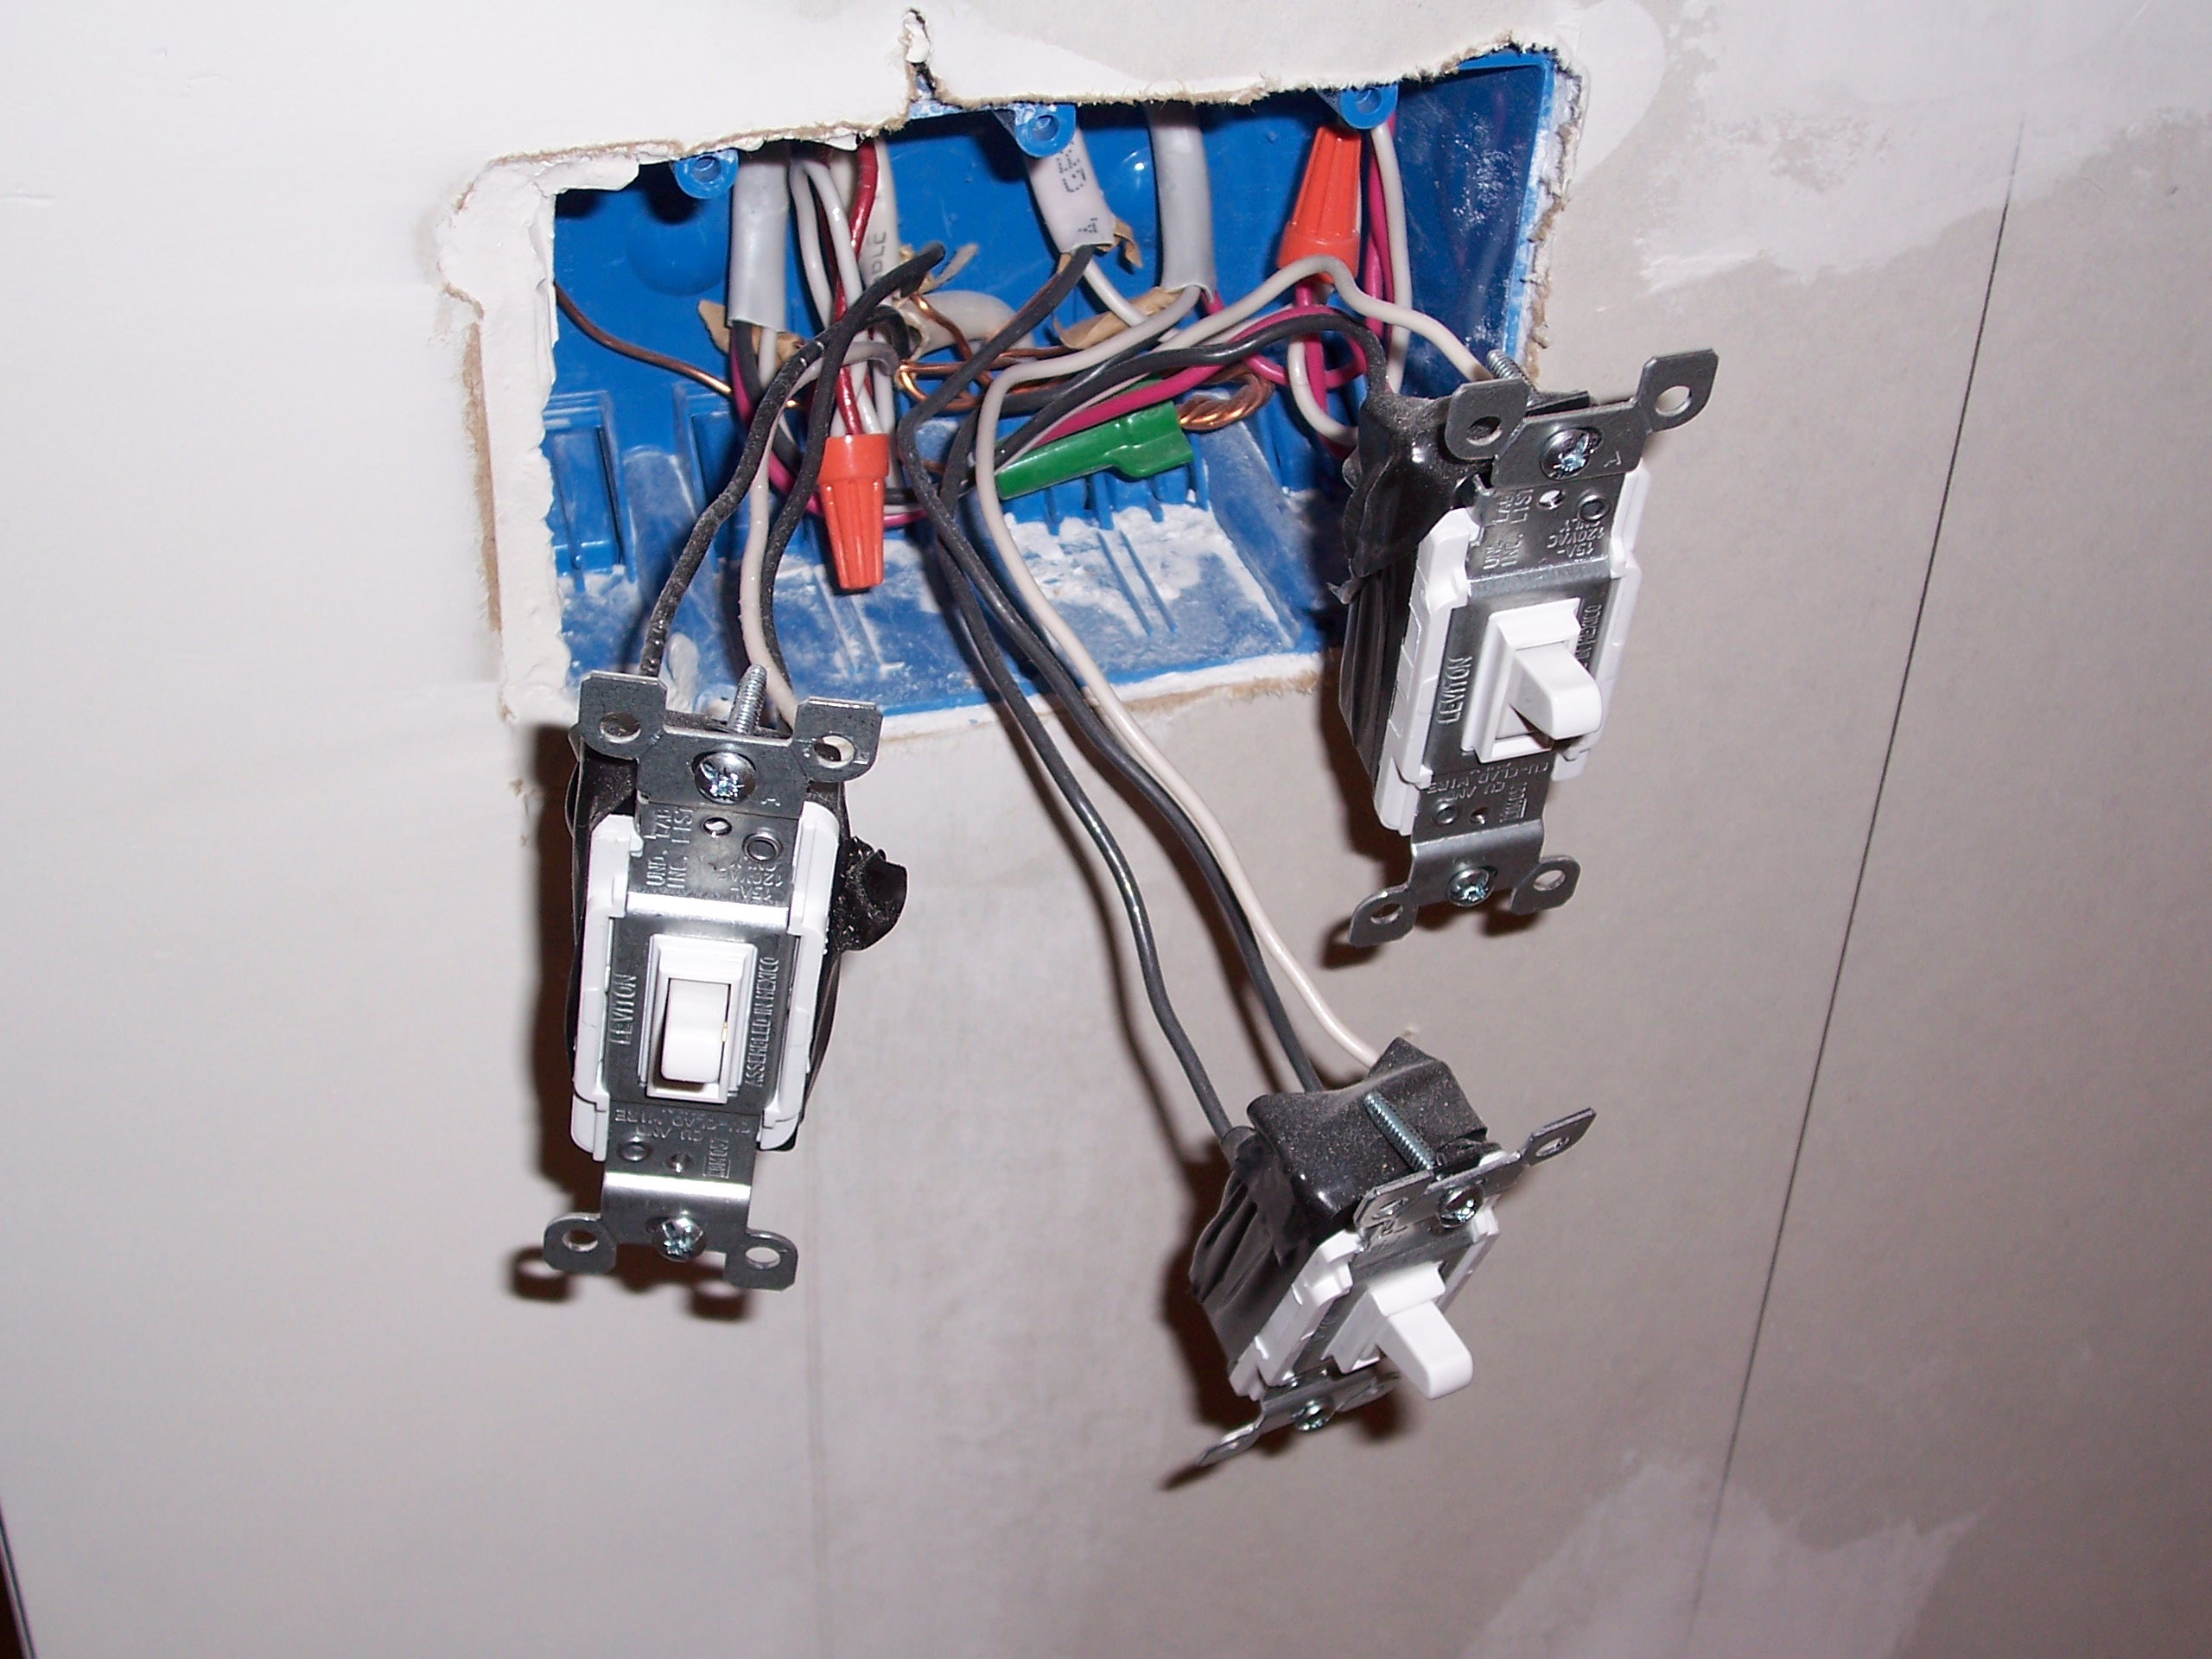 File:Three light switches with exposed wiring.jpg - Wikimedia Commons